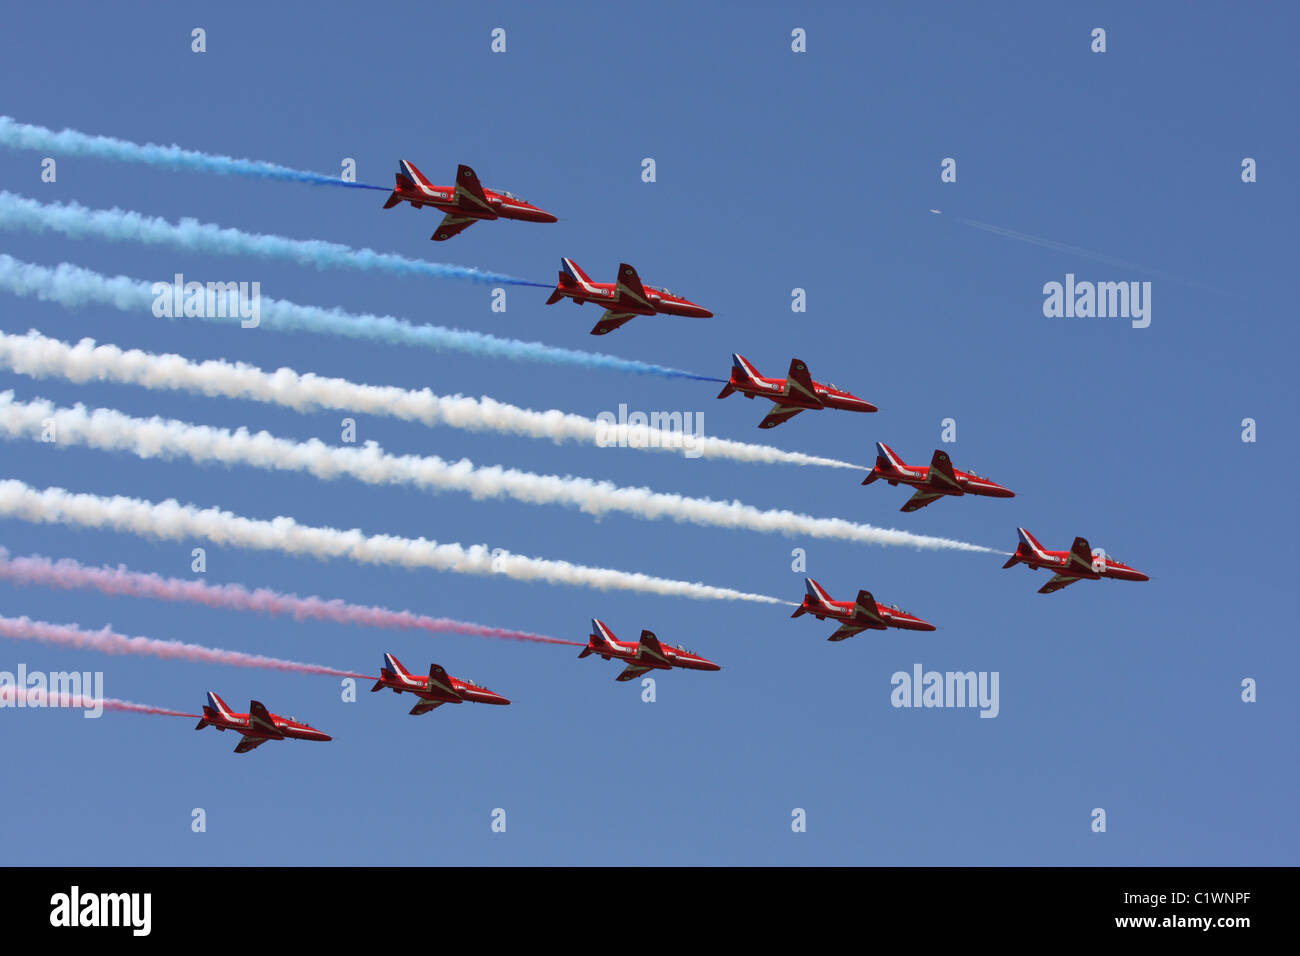 The red arrows flying in formation across a blue sky trailing smoke. - Stock Image